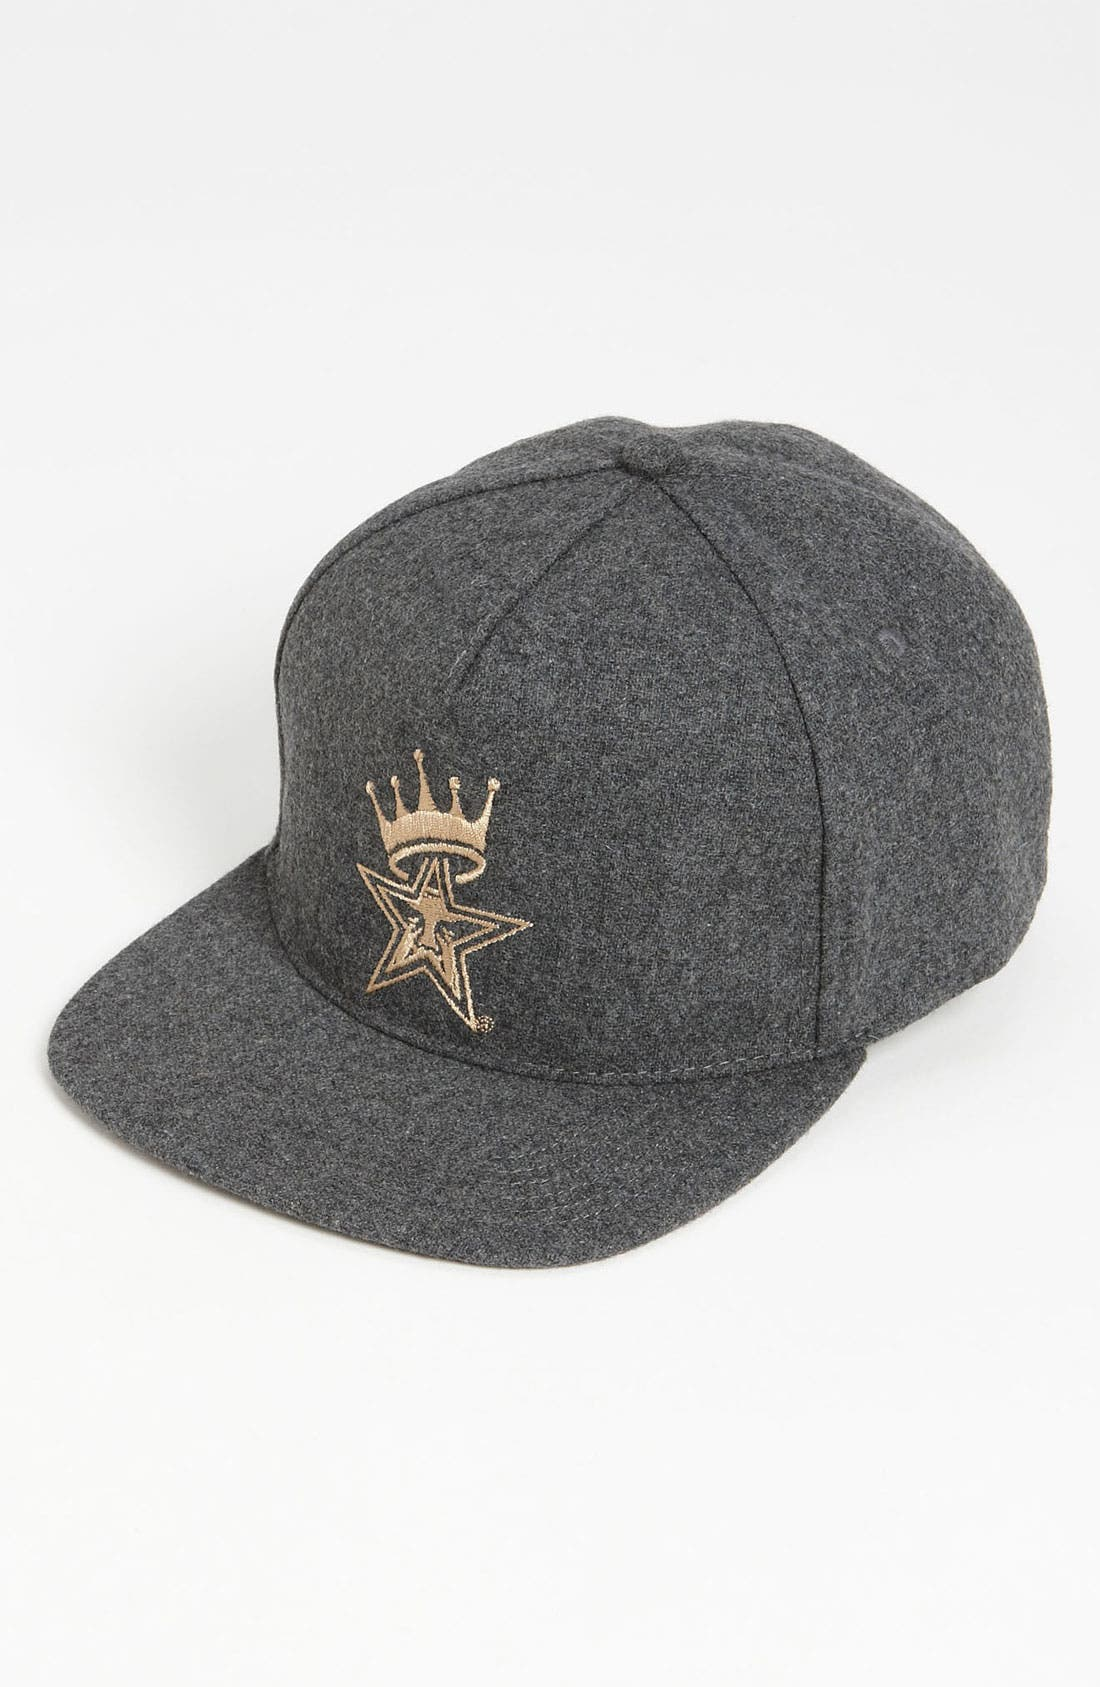 Main Image - Obey 'Crowned' Snapback Baseball Cap